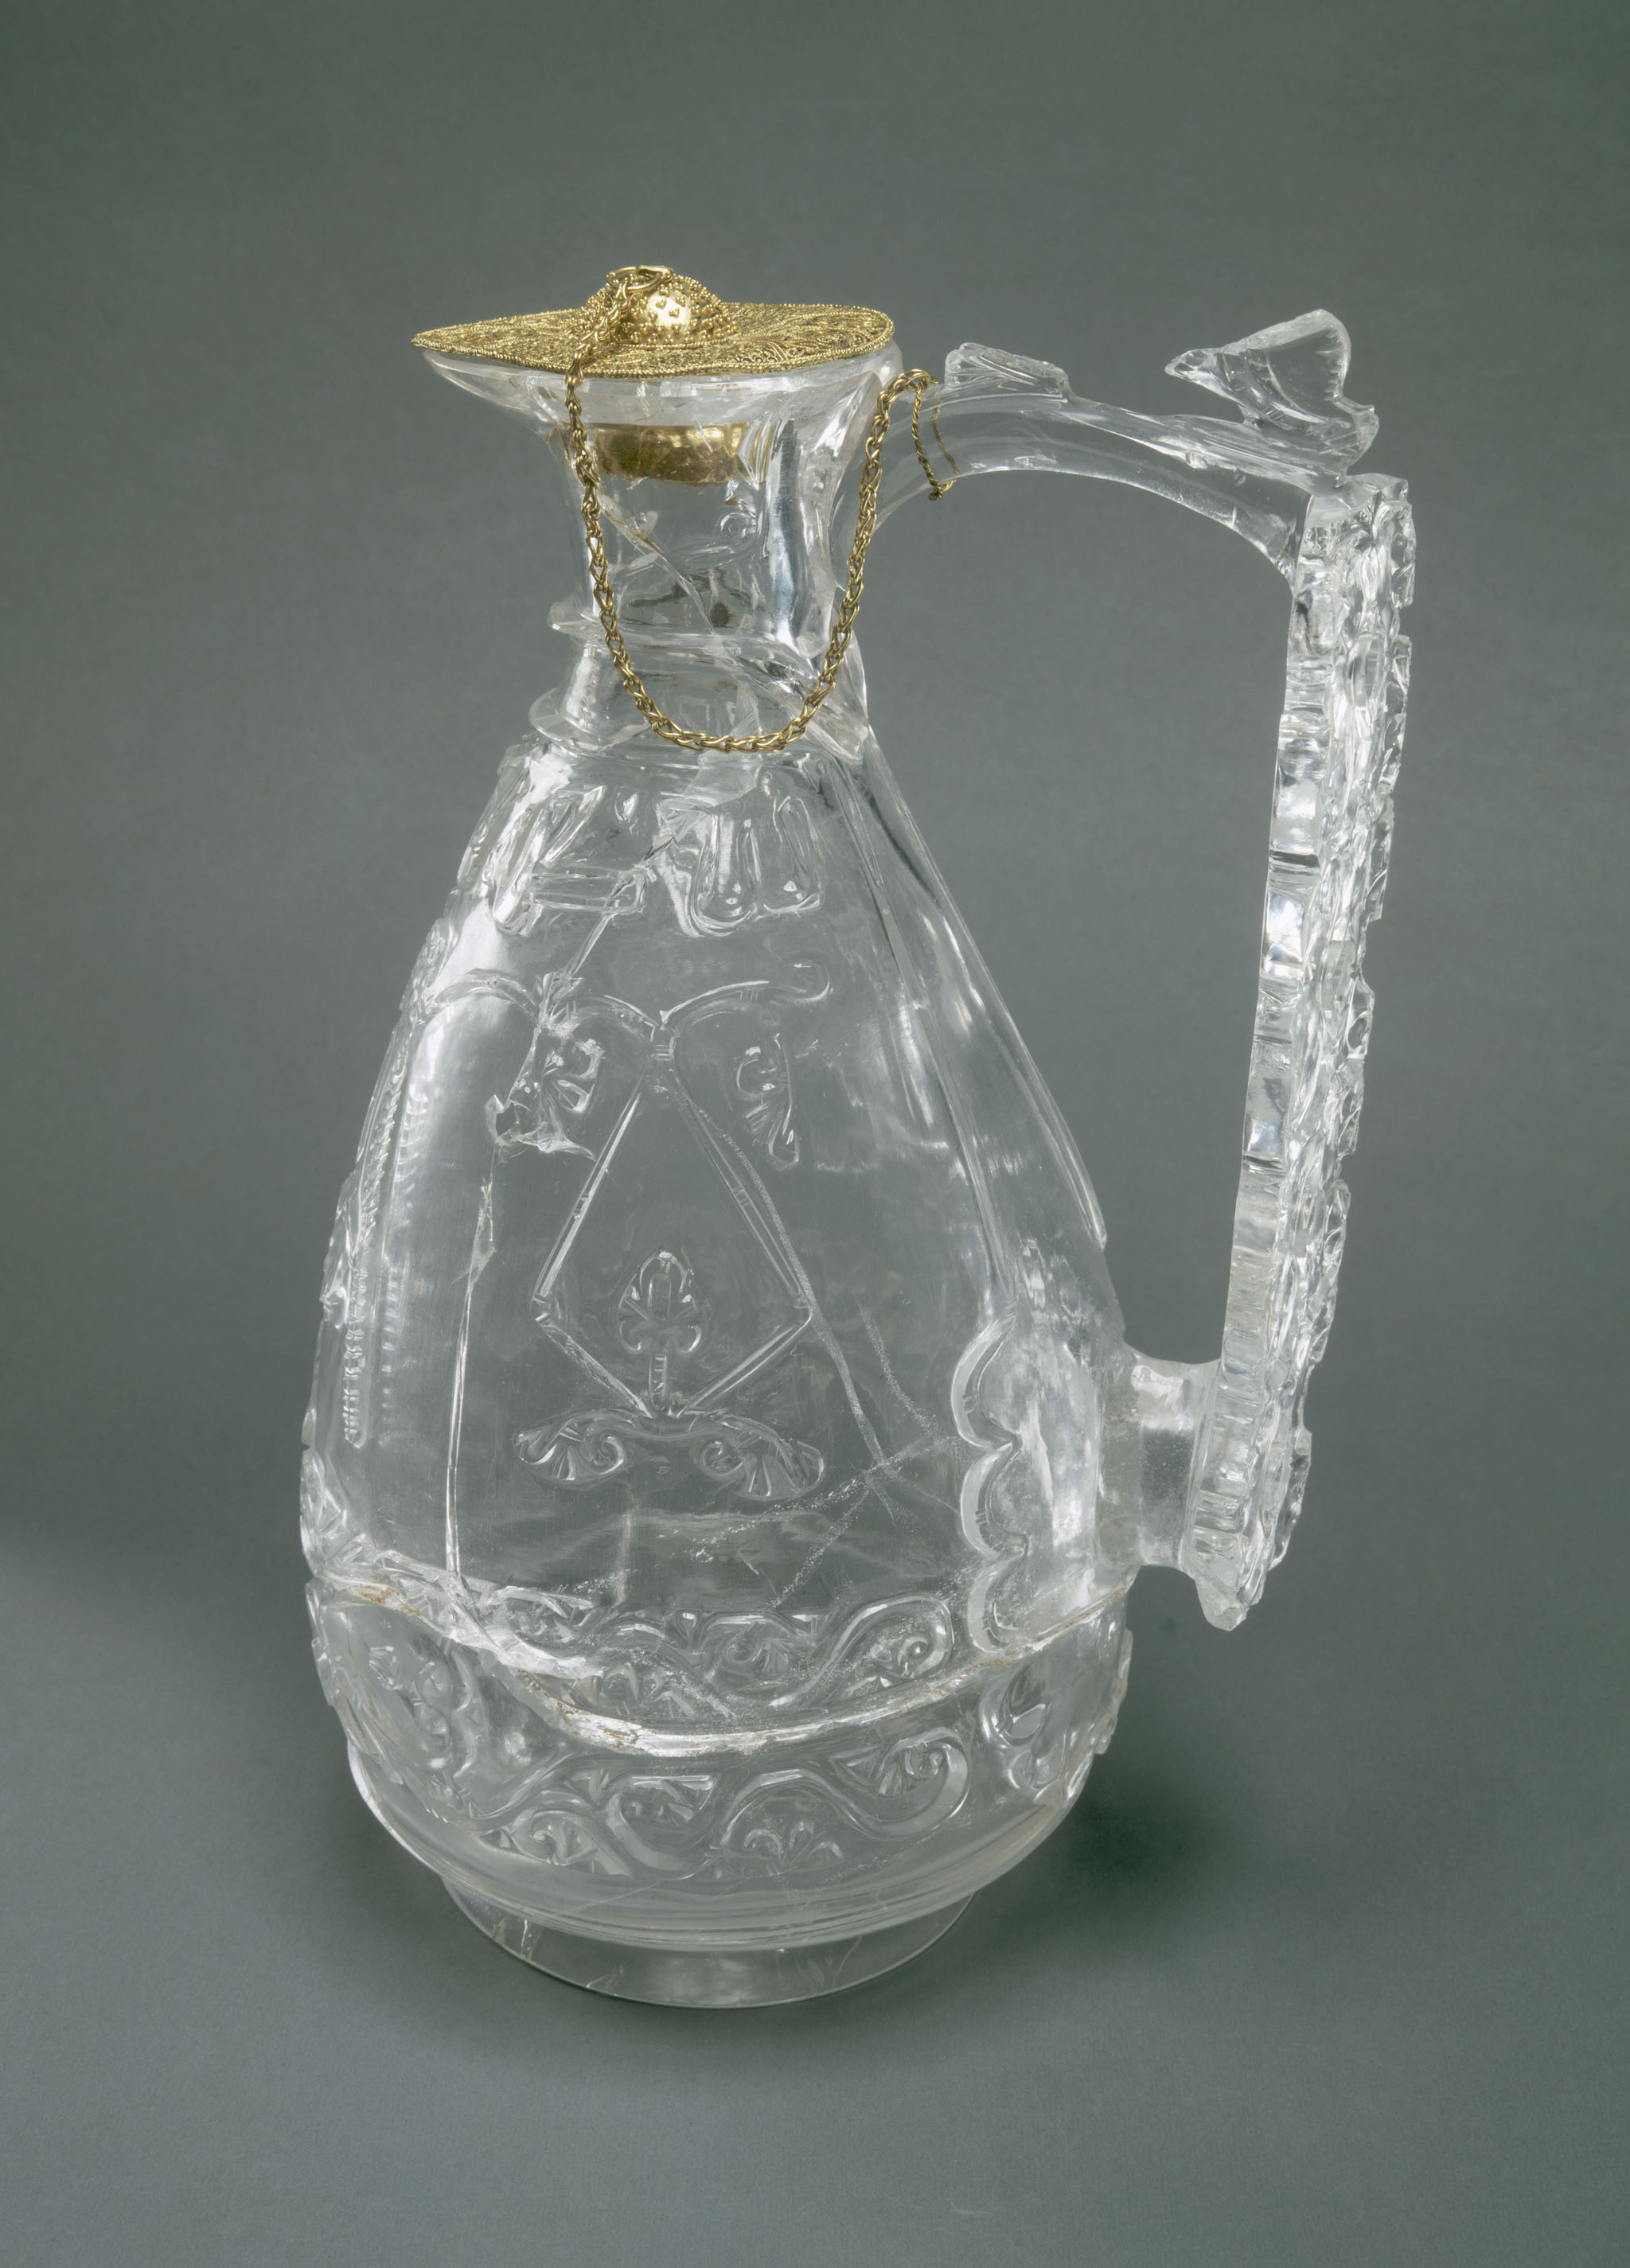 """Inscription: """"Blessings, satisfaction and [...] to its possessor"""" Ewer with inscription in Kufic script. Late 10th. or early 11th. century (lid: 11th century). Rock crystal: Cairo, Egypt. Lid: central or southern Italy. From the Louvre"""